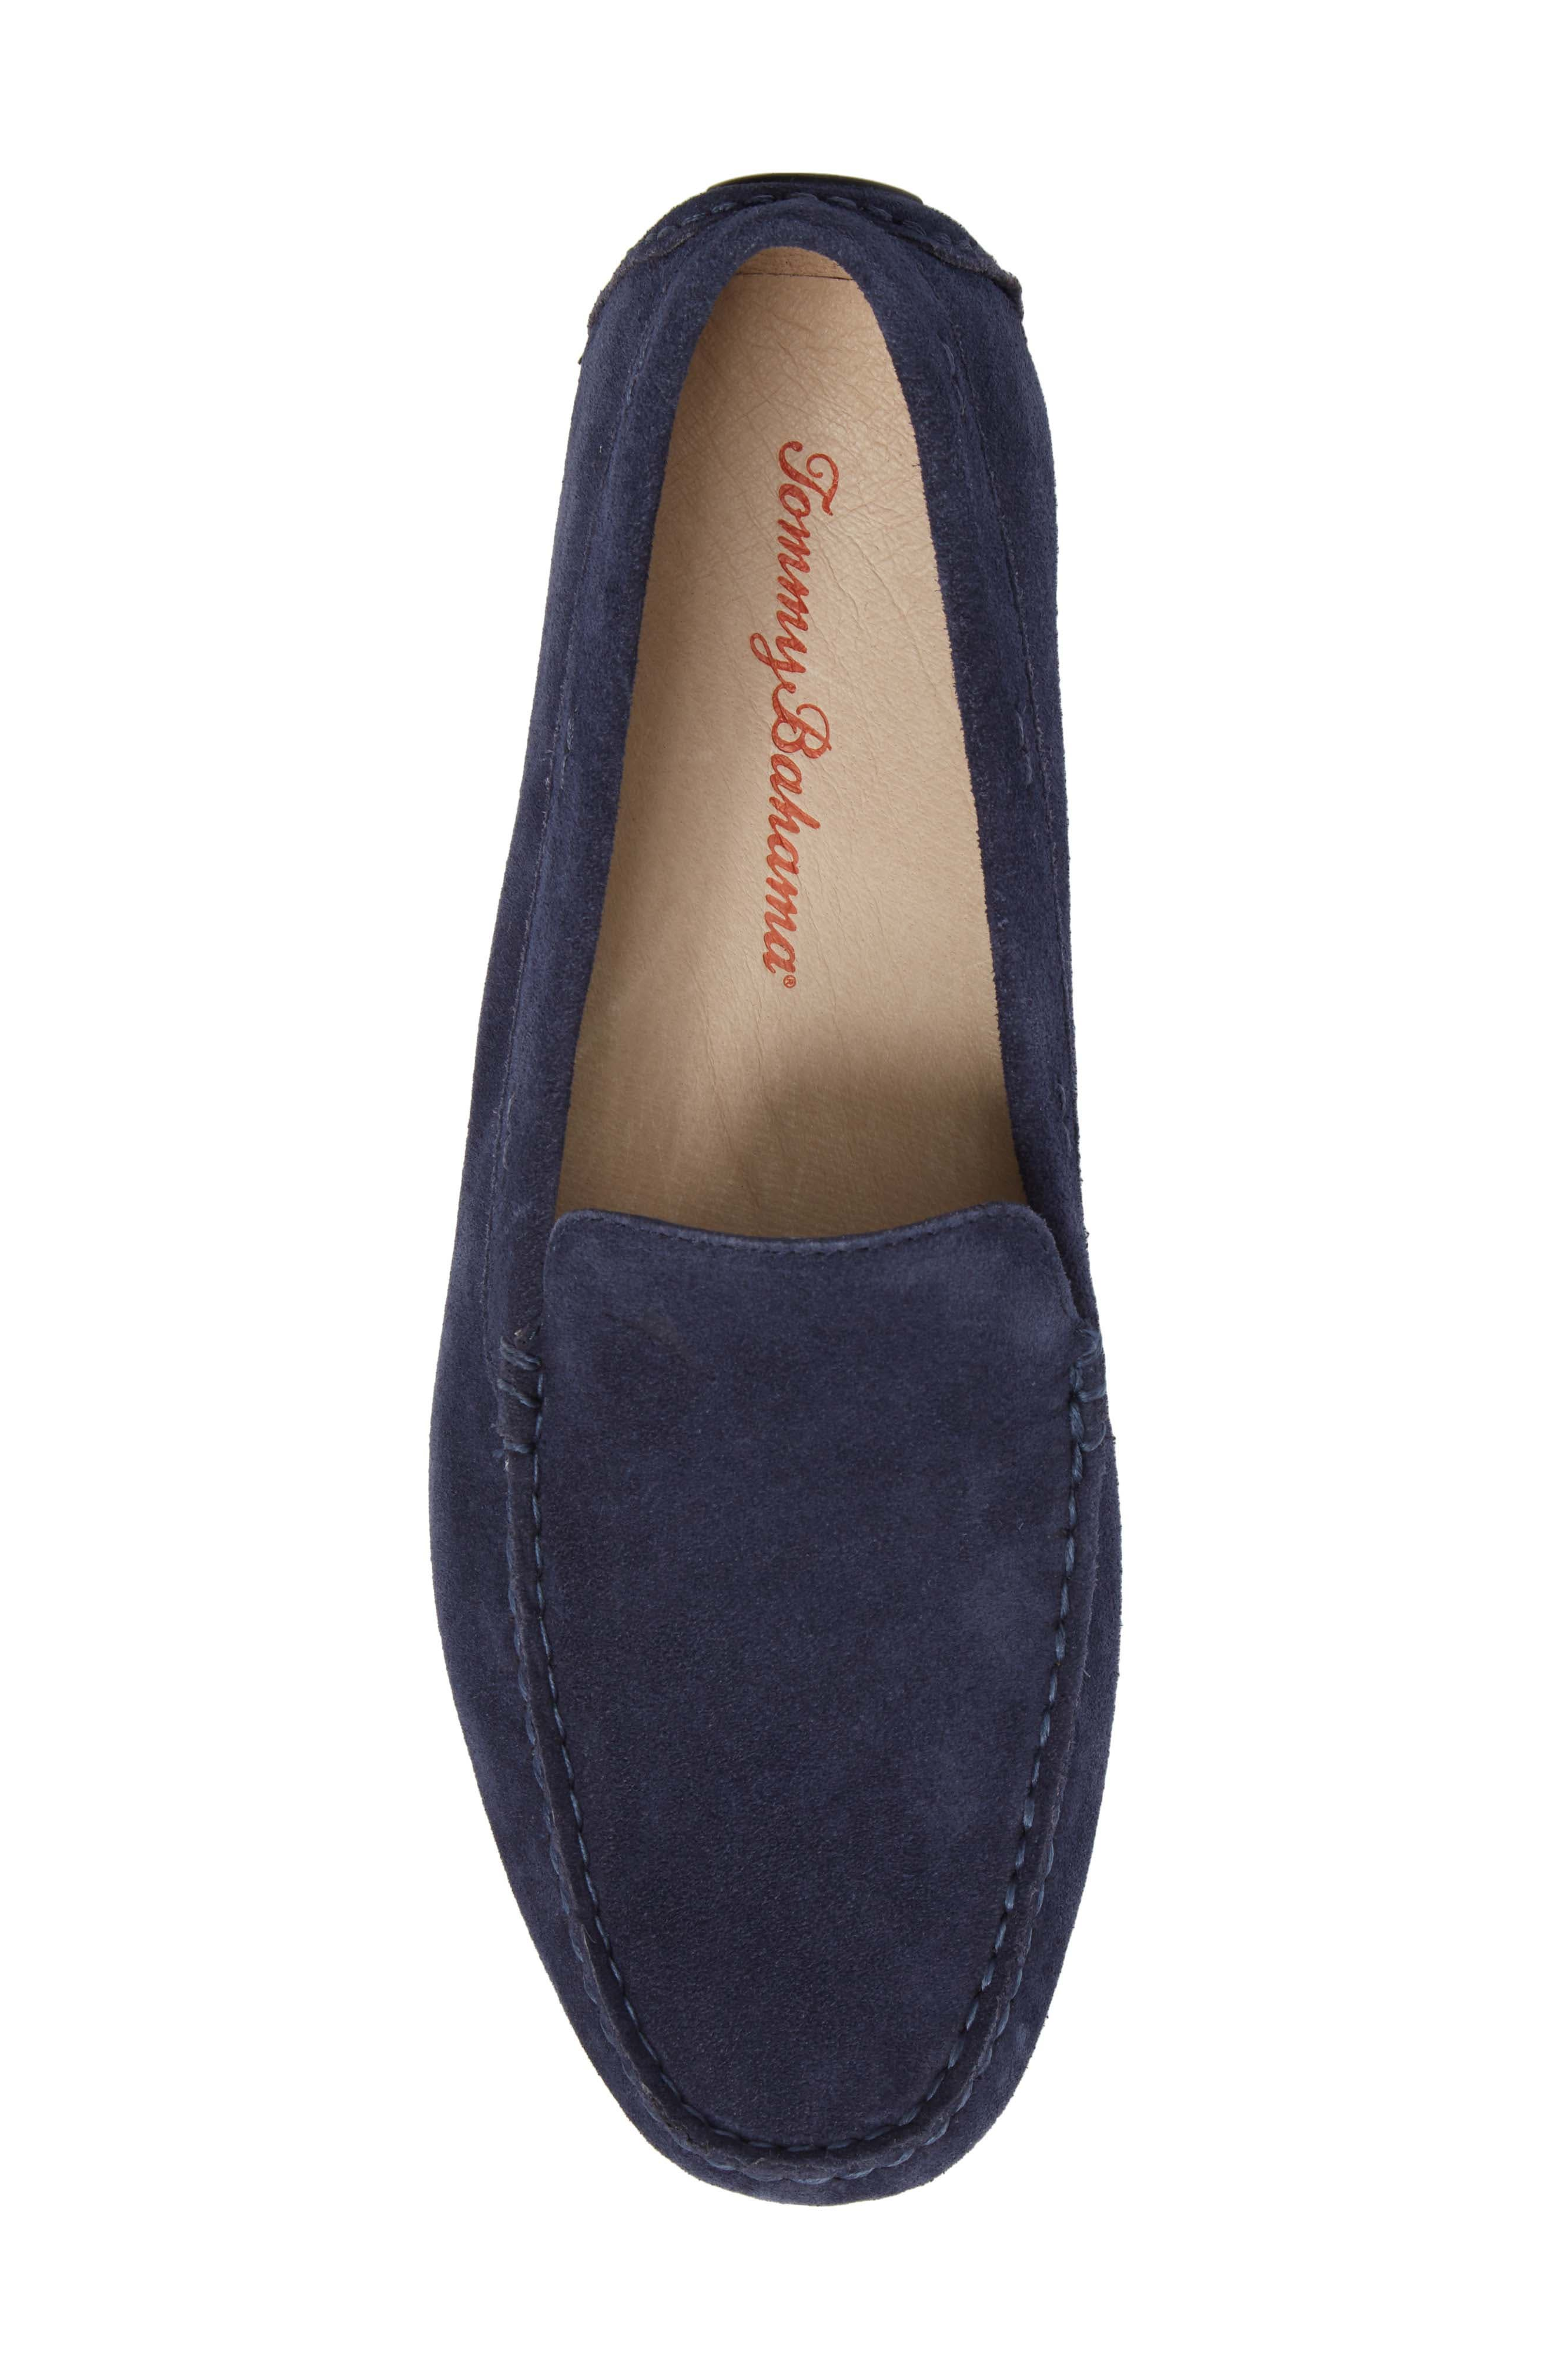 Pagota Driving Loafer,                             Alternate thumbnail 27, color,